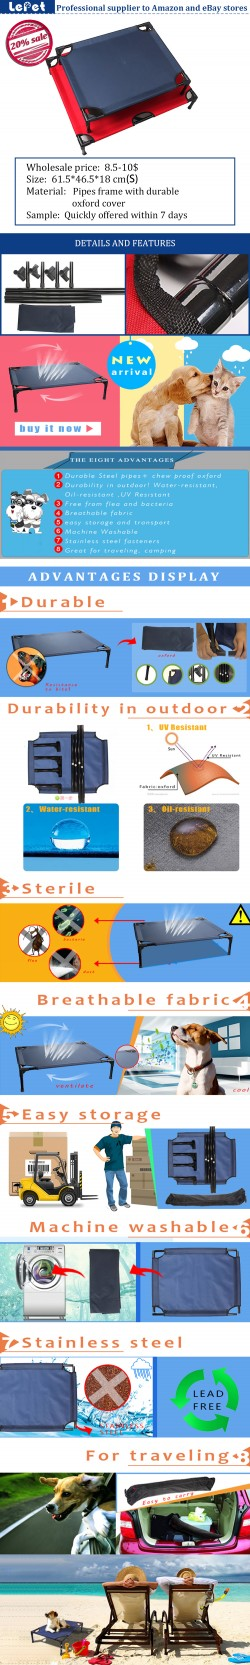 Hot sale outdoor light foldable elevated dog bed